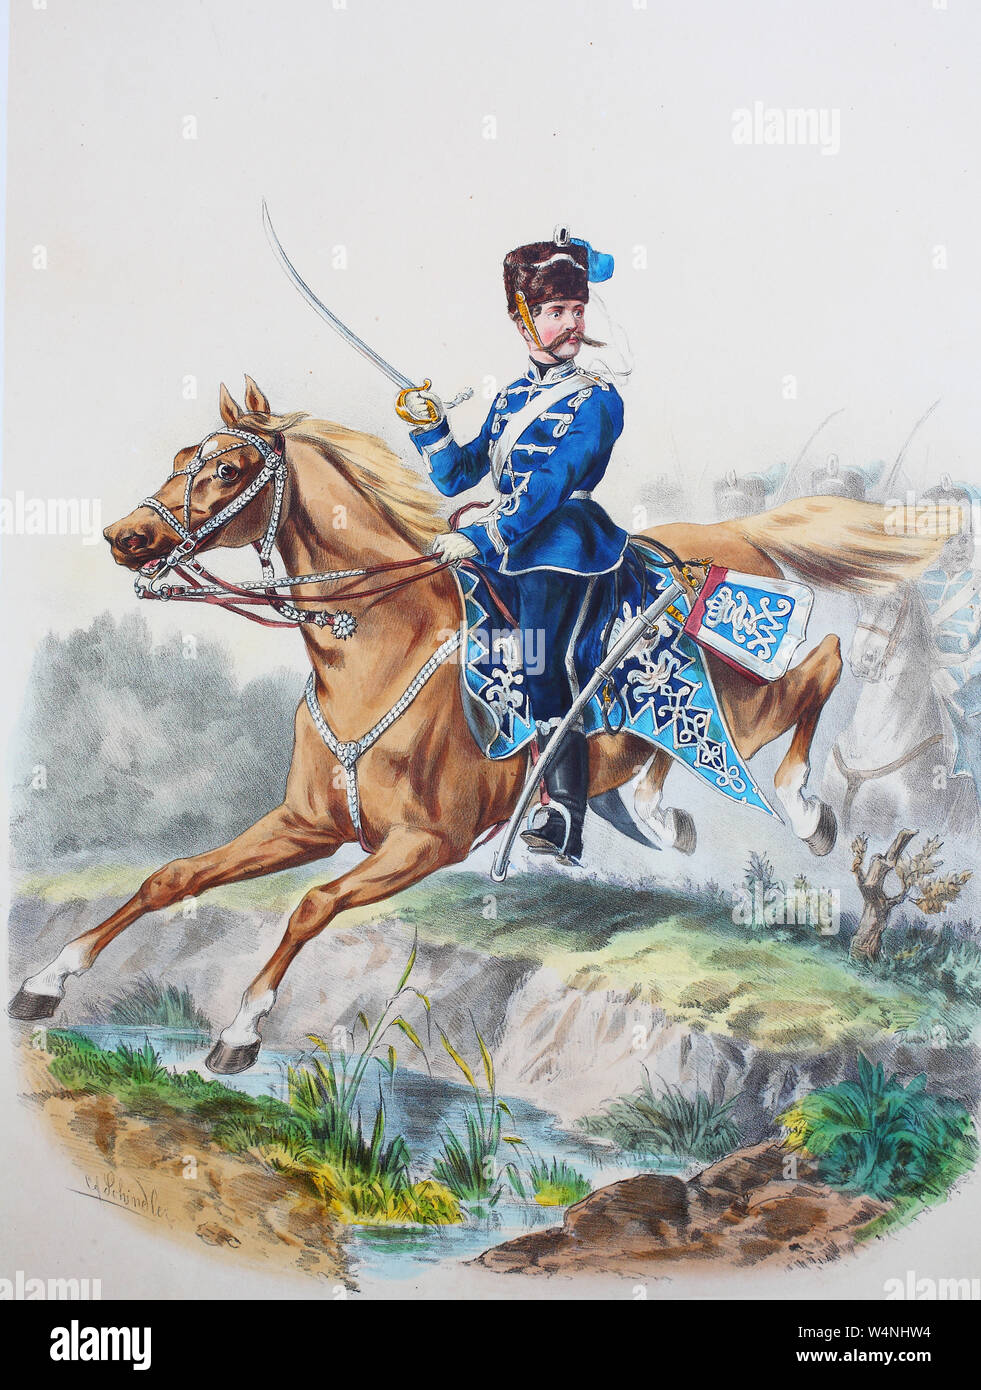 Royal Prussian Army, Guards Corps, Preußens Heer, preussische Garde, Westfälisches Husaren Regiment No.8, Offizier, Digital improved reproduction of an illustration from the 19th century Stock Photo